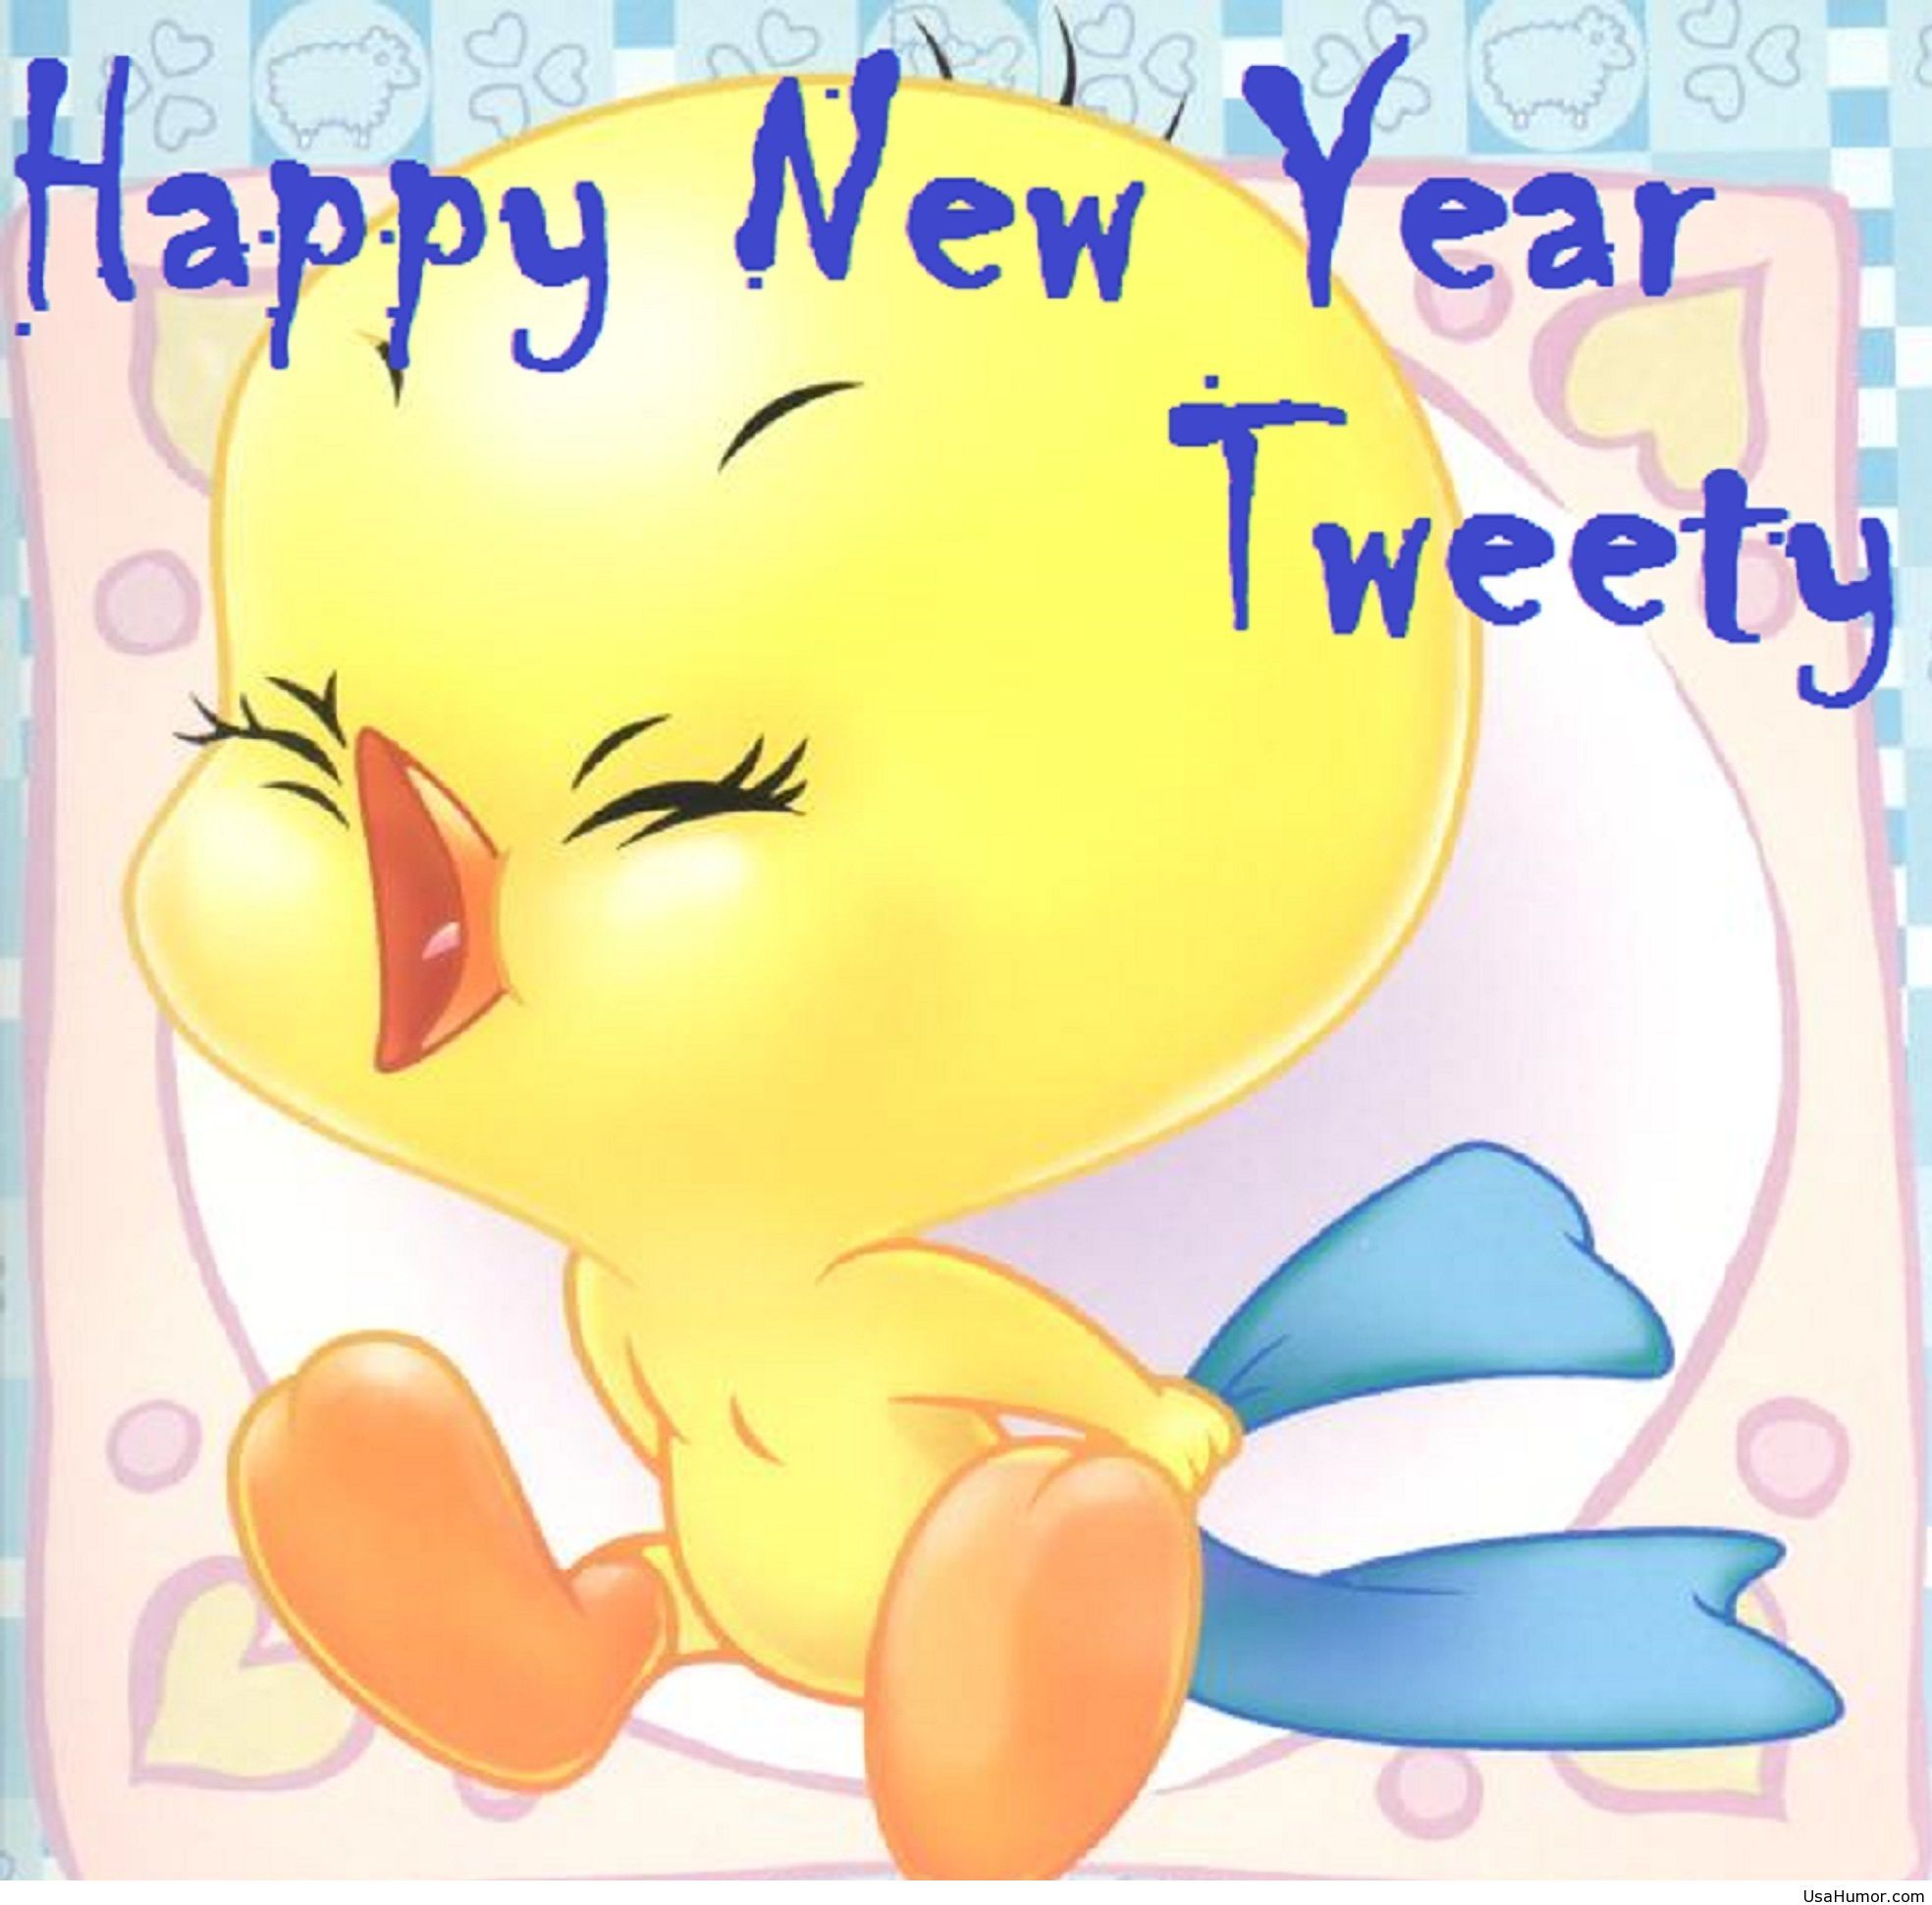 Crazy Happy New Year Quotes: Funny Tweety Image Happy New Year 2015